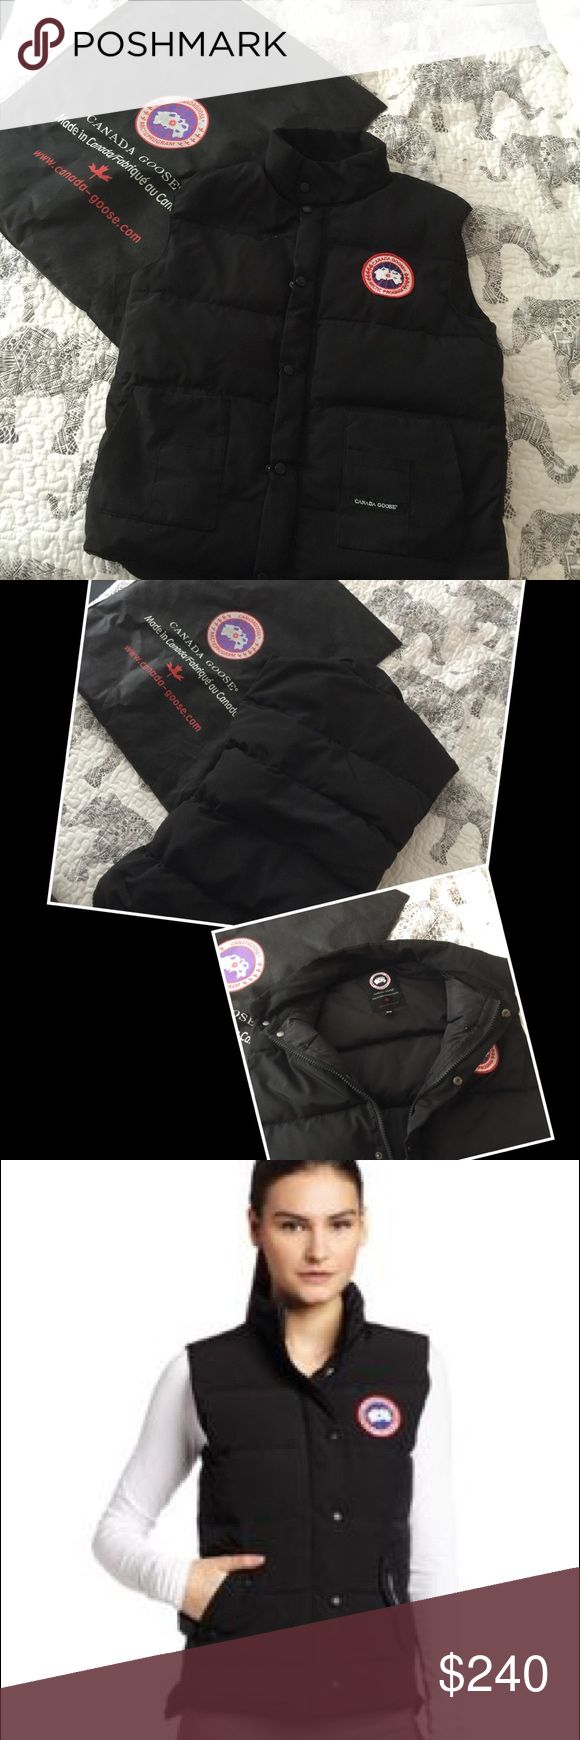 Canada goose M black vest This is a male size M. I'm usually a women m-l for coats and this fits me perfectly. In almost new condition beautiful fit keep you warm! Chest 38-40, waist 31-33, hip 38-40. Retail 400 Canada Goose Jackets & Coats Vests